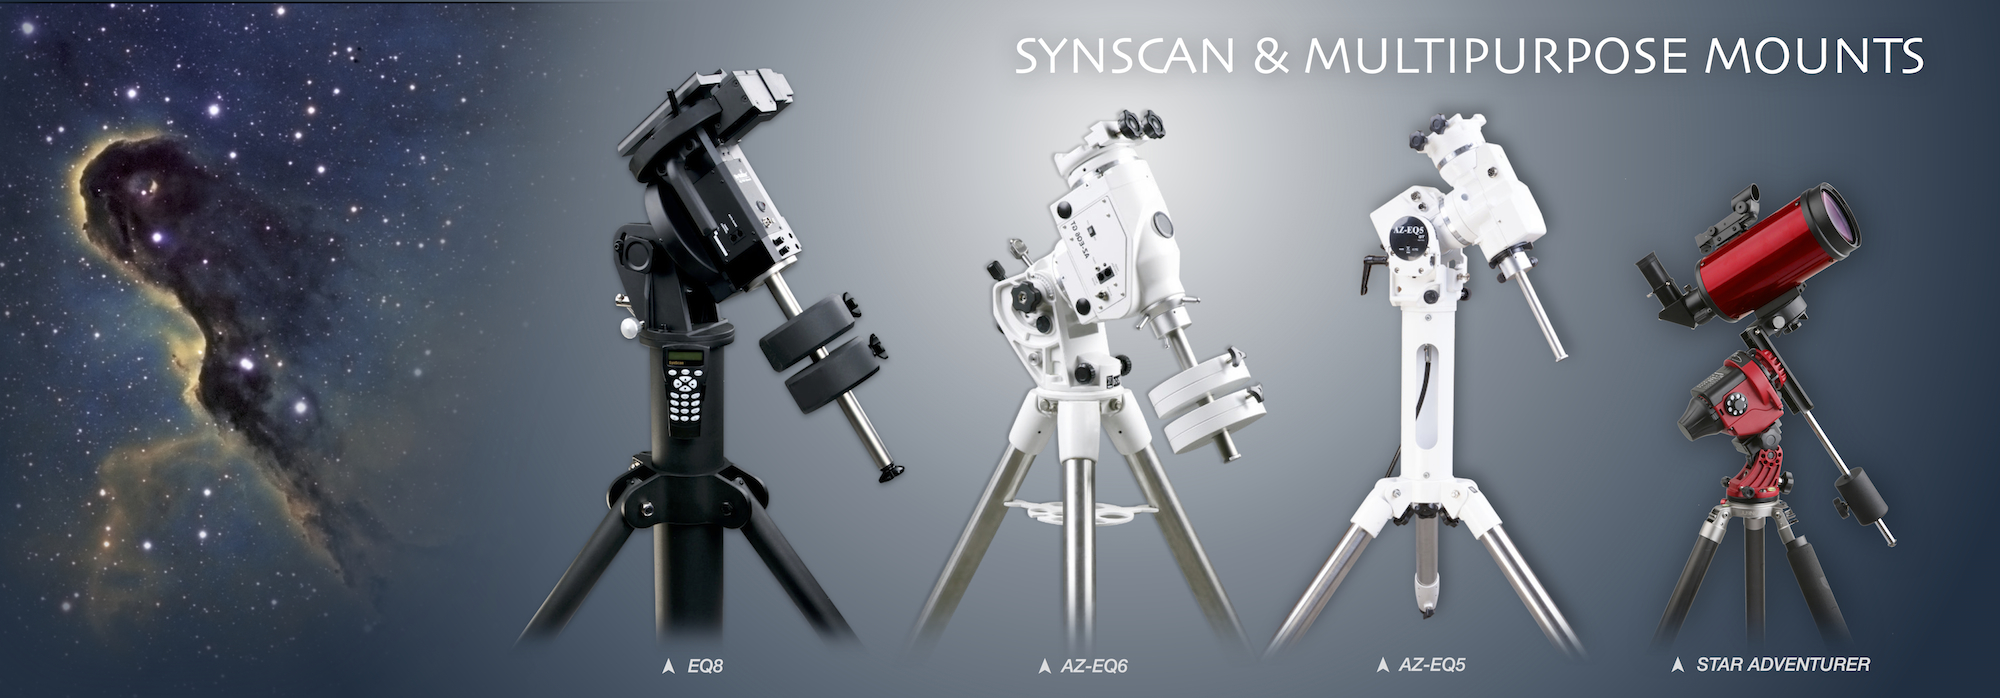 Sky-Watcher   Global Website bb482c9cc6c3